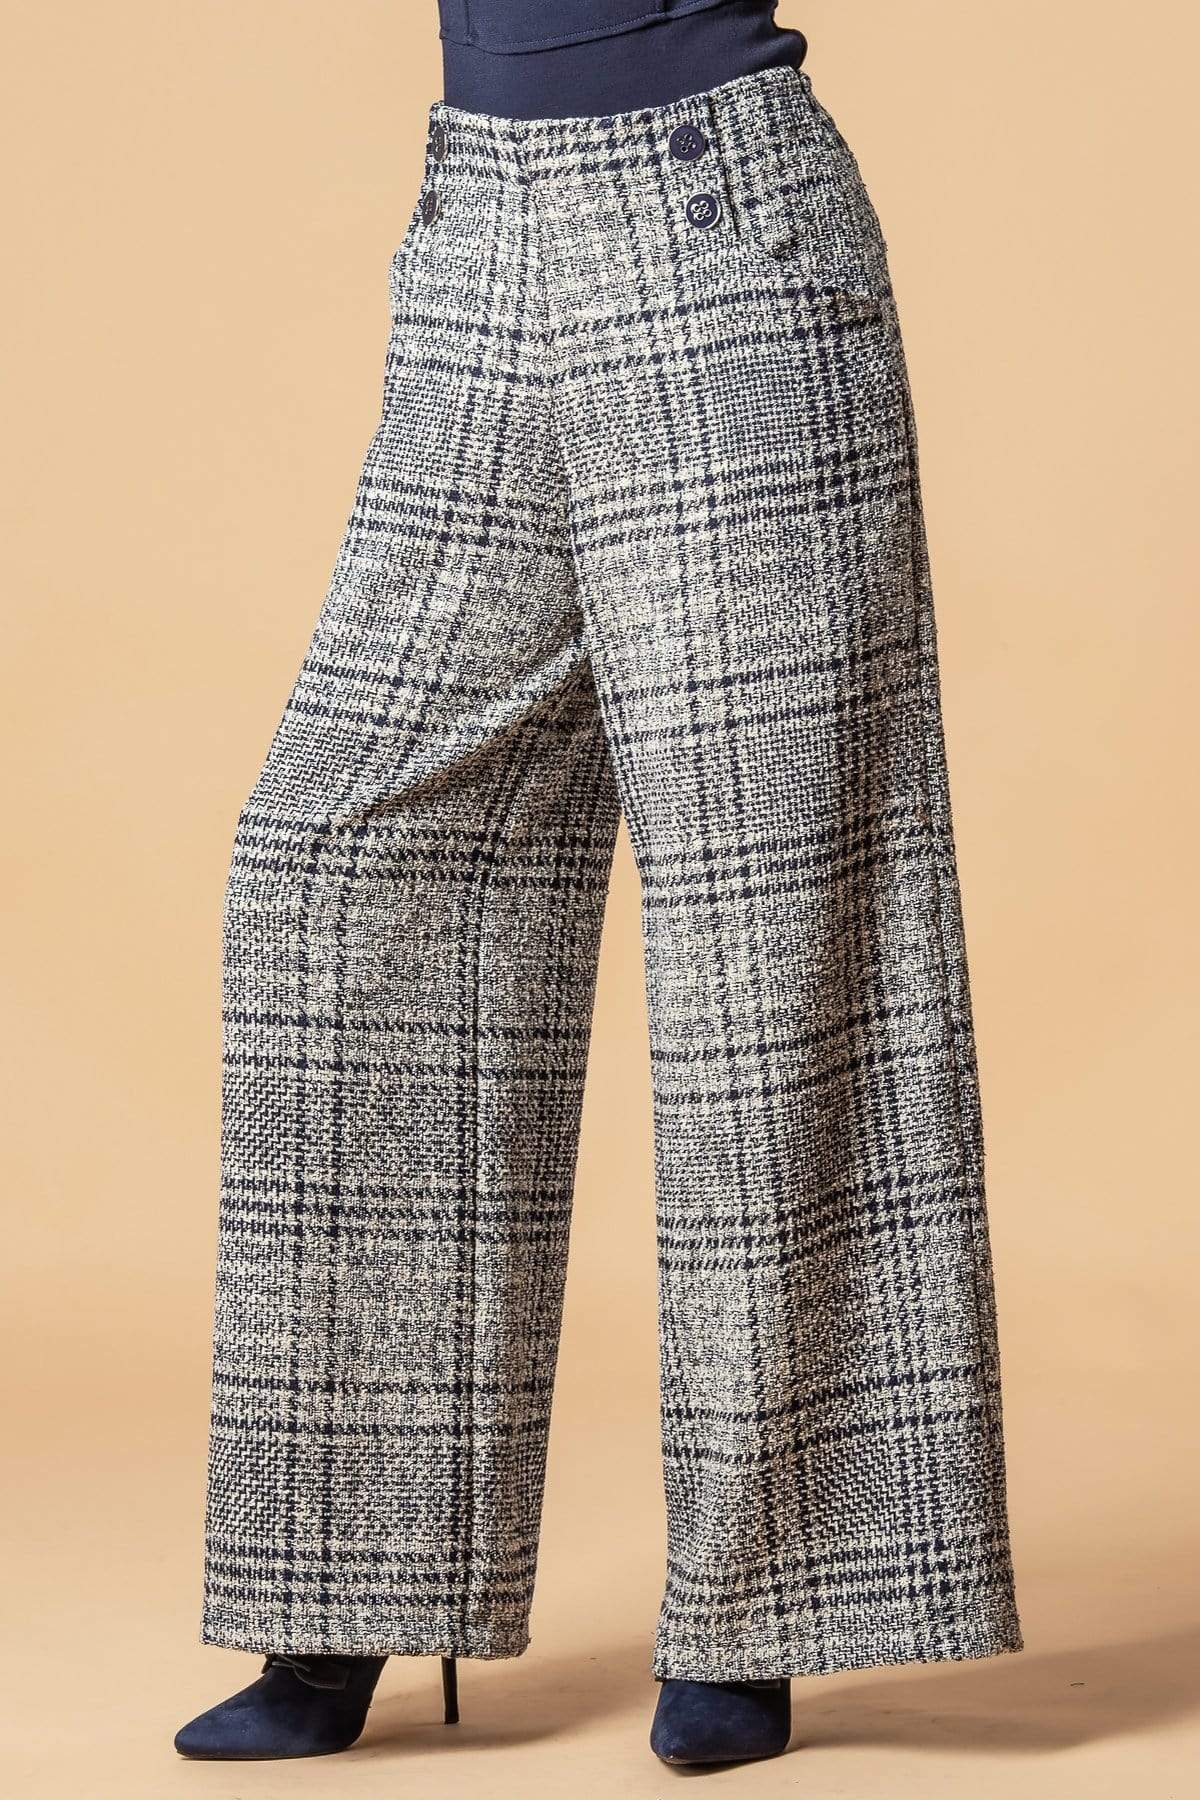 Eva Franco Pants Hepburn Pant - Whitby Plaid